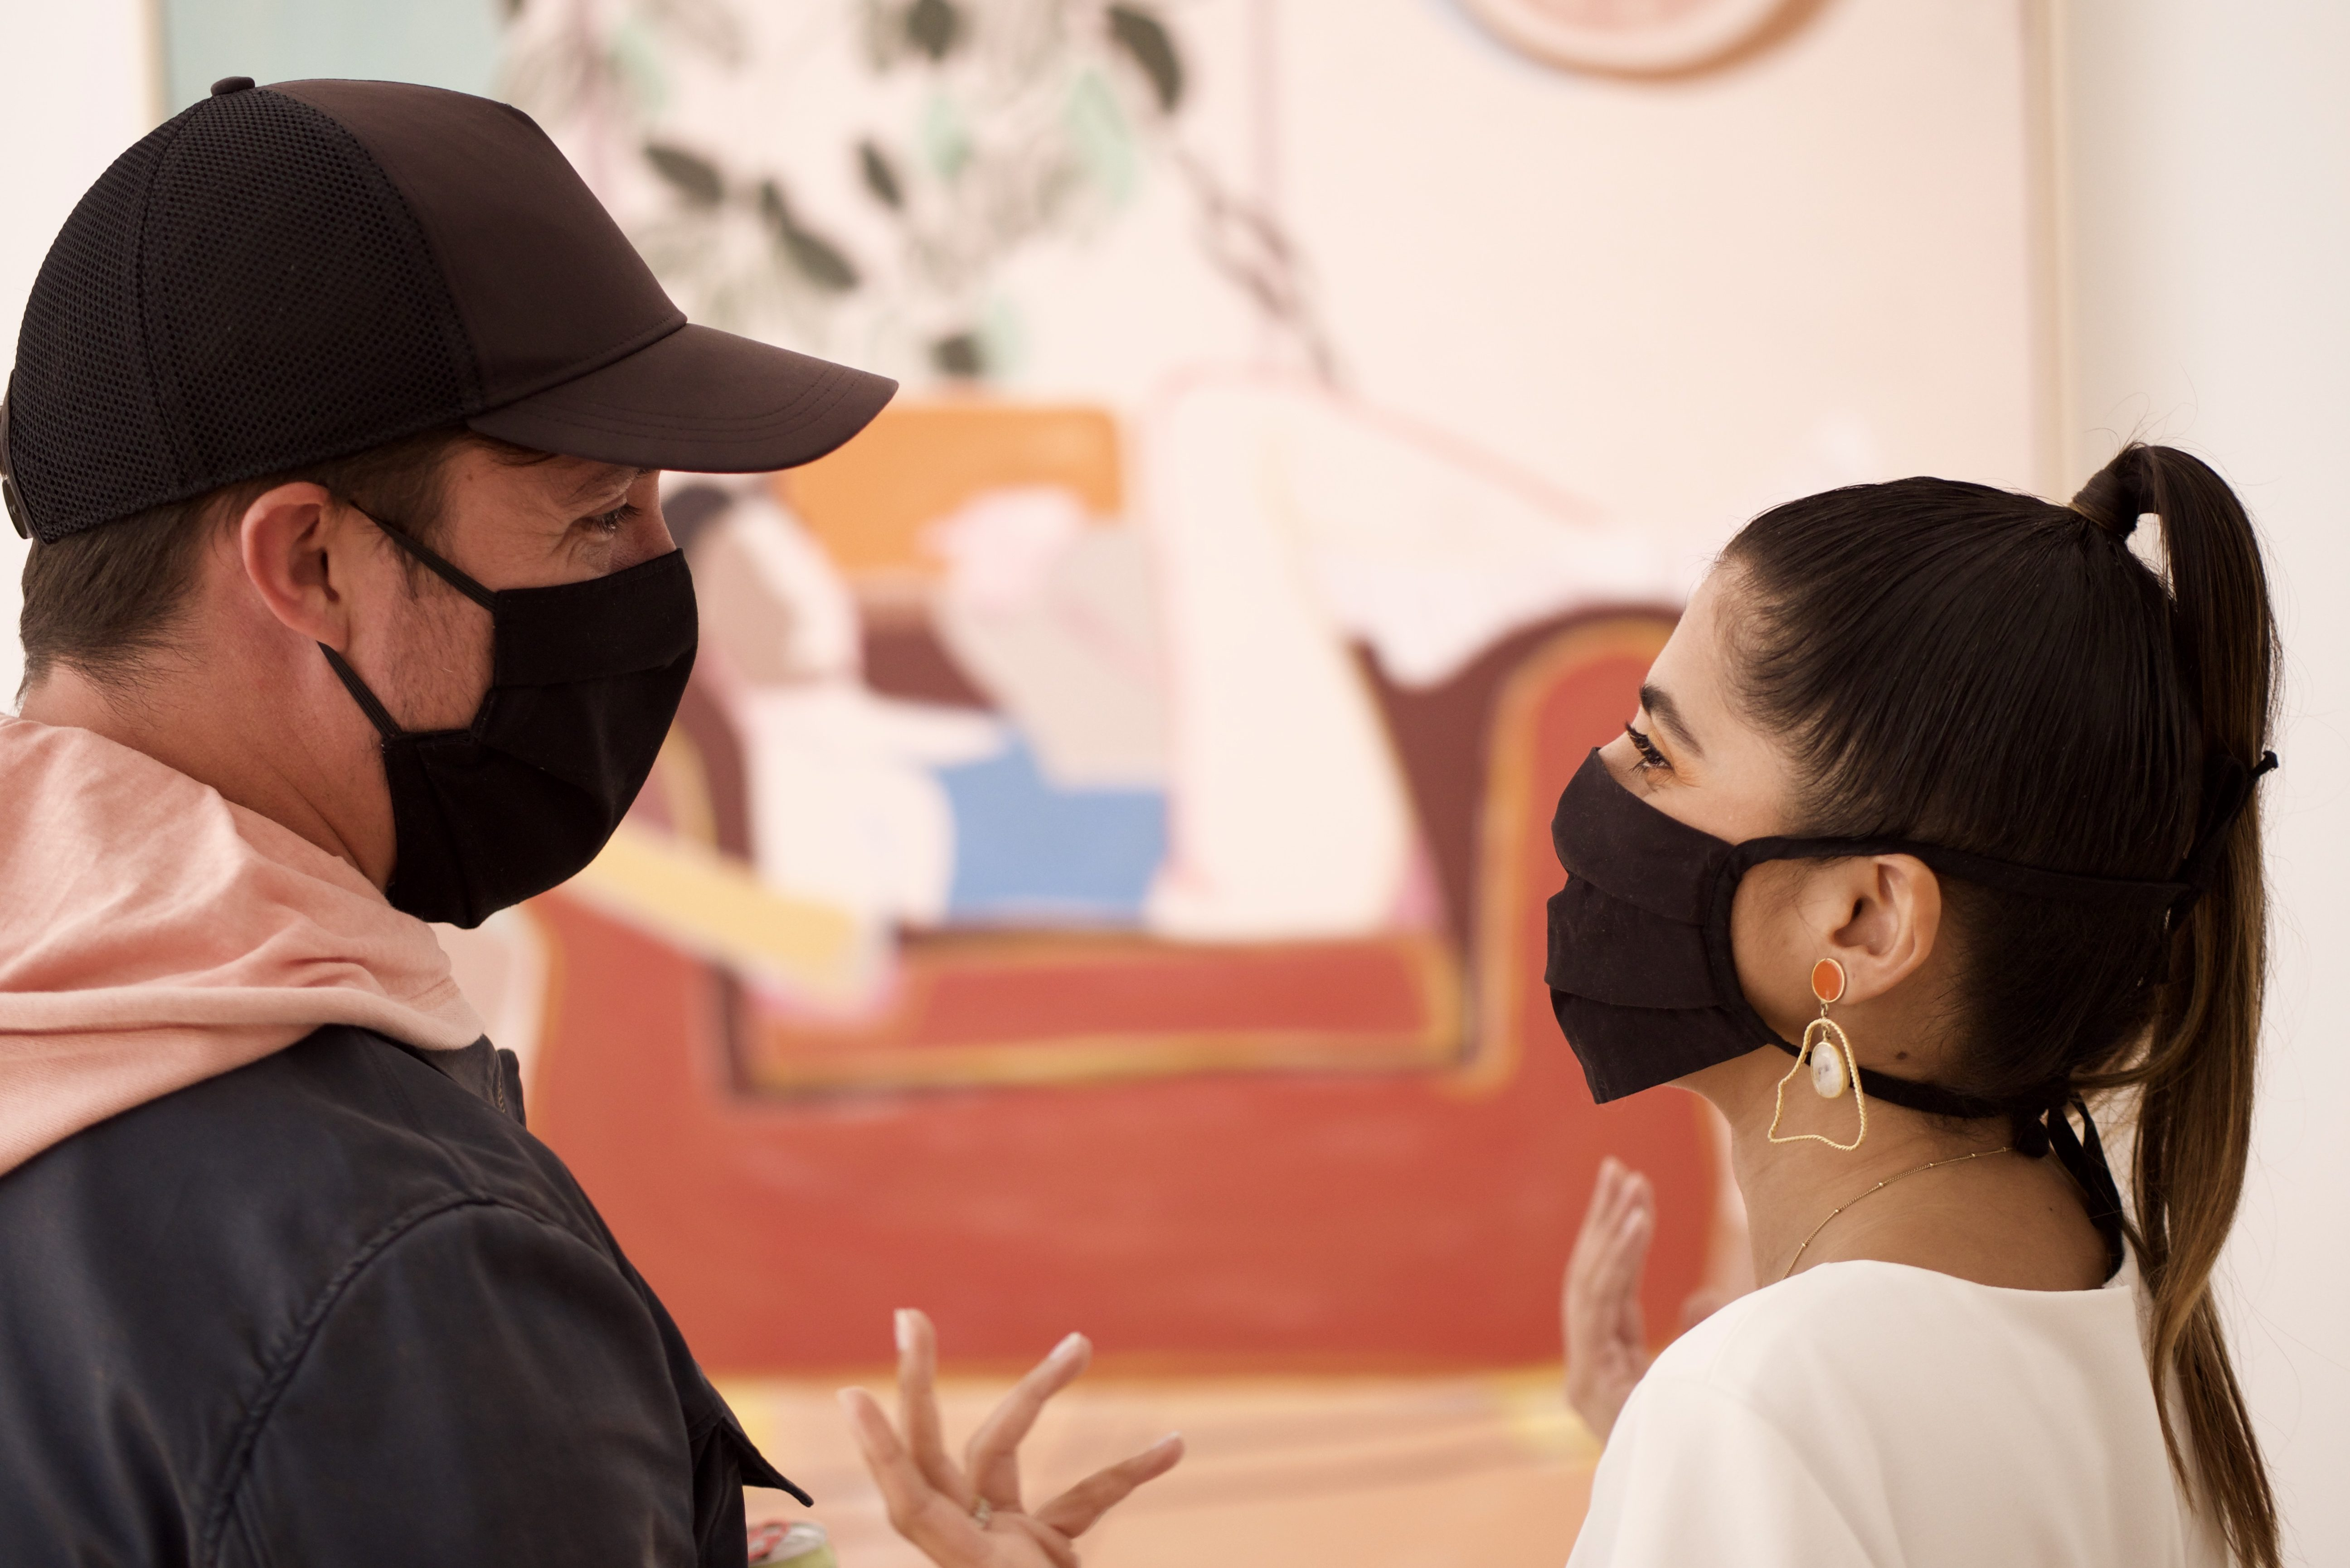 A young woman and a young man talk in front of a painting, blurred in the background. Both are wearing black face masks. The woman has thin, dark hair styled in a high ponytail and is gesticulating with her hands, and her eyes suggest that she is smiling. The man wears a black cap and his eyes suggest that that he is smiling too.